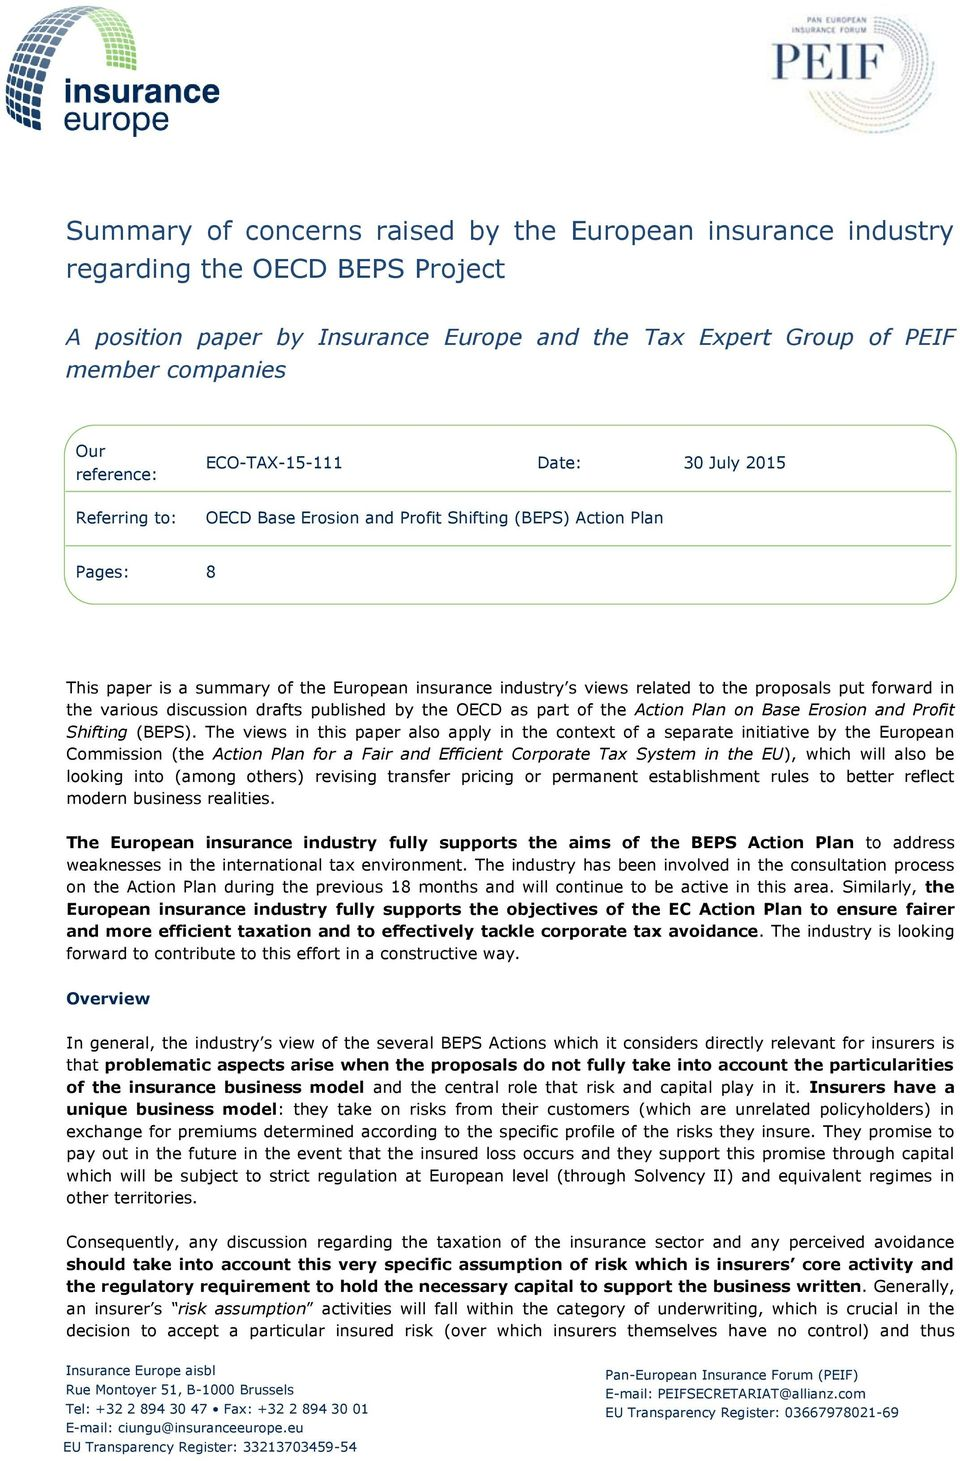 proposals put forward in the various discussion drafts published by the OECD as part of the Action Plan on Base Erosion and Profit Shifting (BEPS).